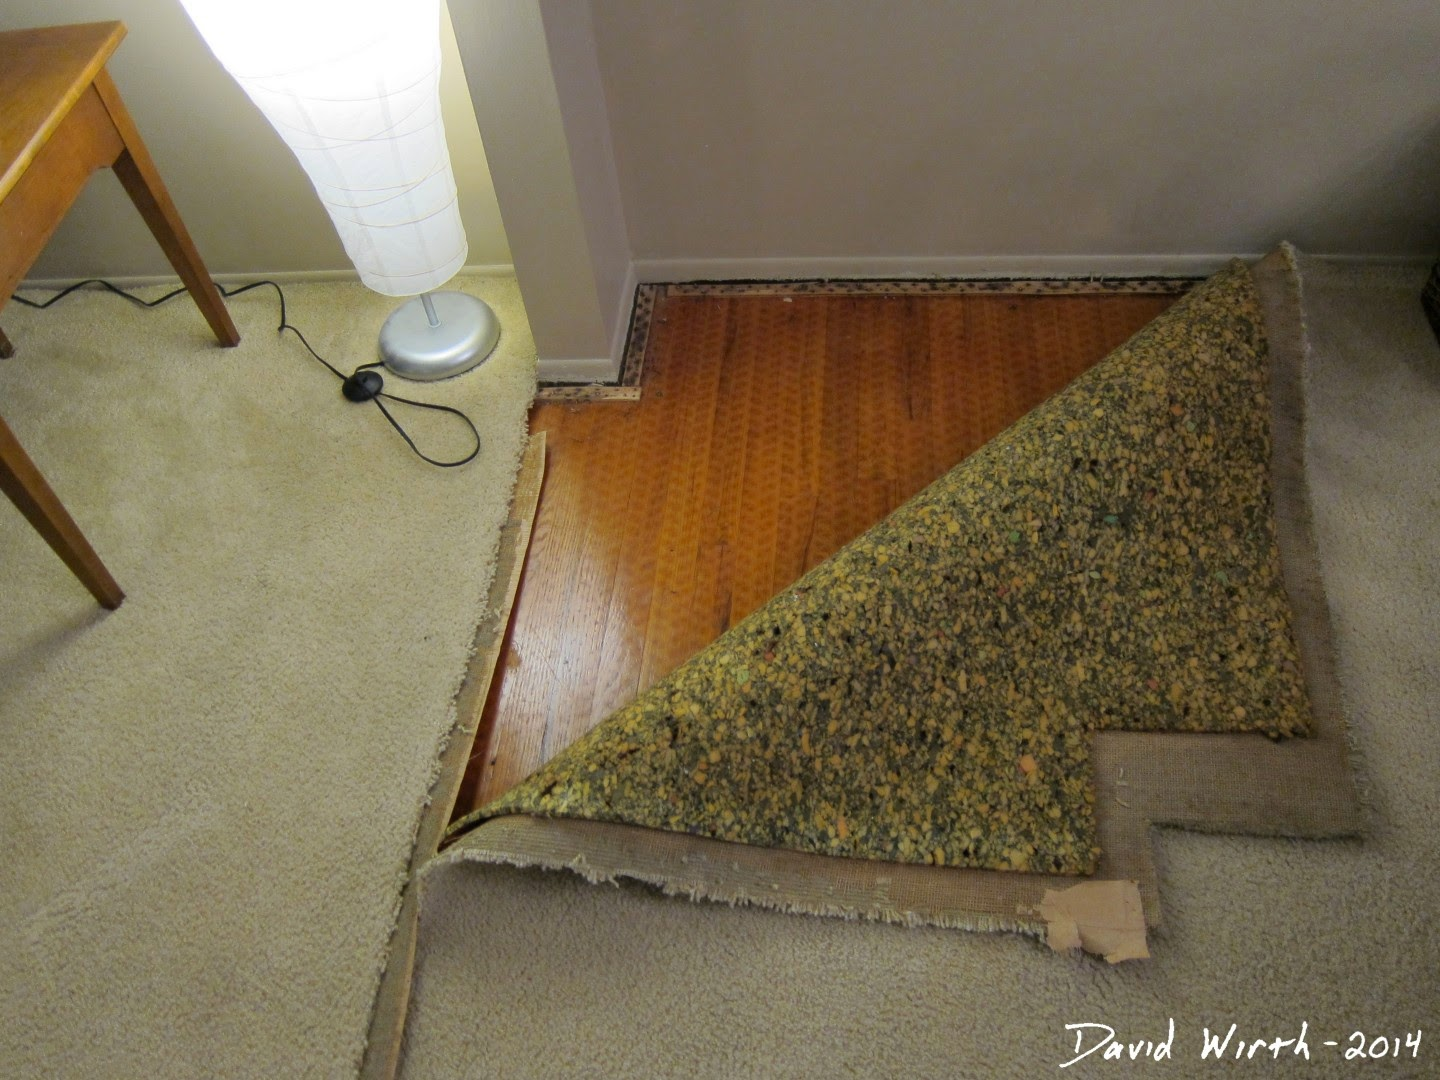 home depot carpet, carpet pad, hard wood floor